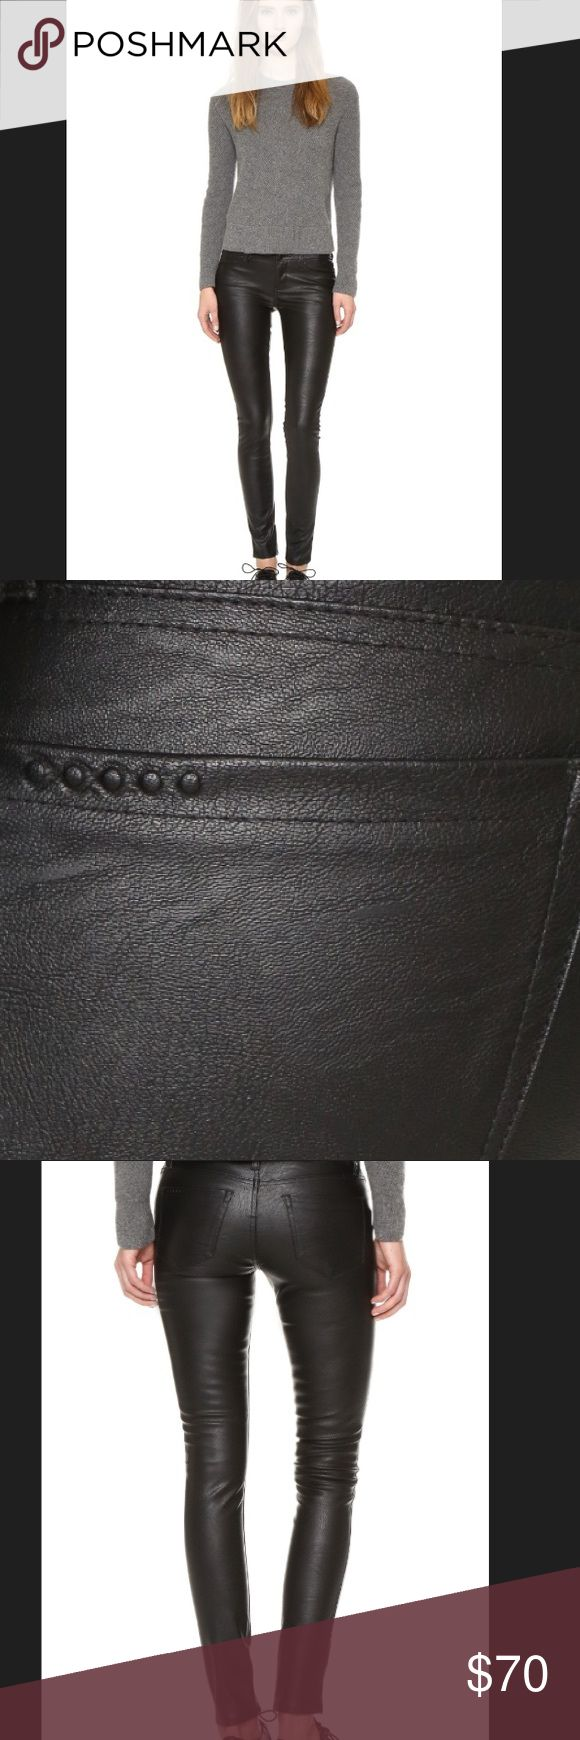 NWOT VEGAN (Faux) leather Blank Denim NYC pants NWT-only tried on. Blank Denim NYC pants arefaux leather with a classic skinny profile. Faux front pockets streamline the front, and patch back pockets finish the look. Single-button closure and zip fly.Fabric: Faux leather.60% polyurethane/40% viscose.Hand wash. MEASUREMENTSRise: 8in 20.5cmInseam29in / 73.5cmLeg opening: 10in / 25.5cm . Ive owned a few pairs of these. I gained weight and tried these and torethe belt loop🙈Not noticeable when…